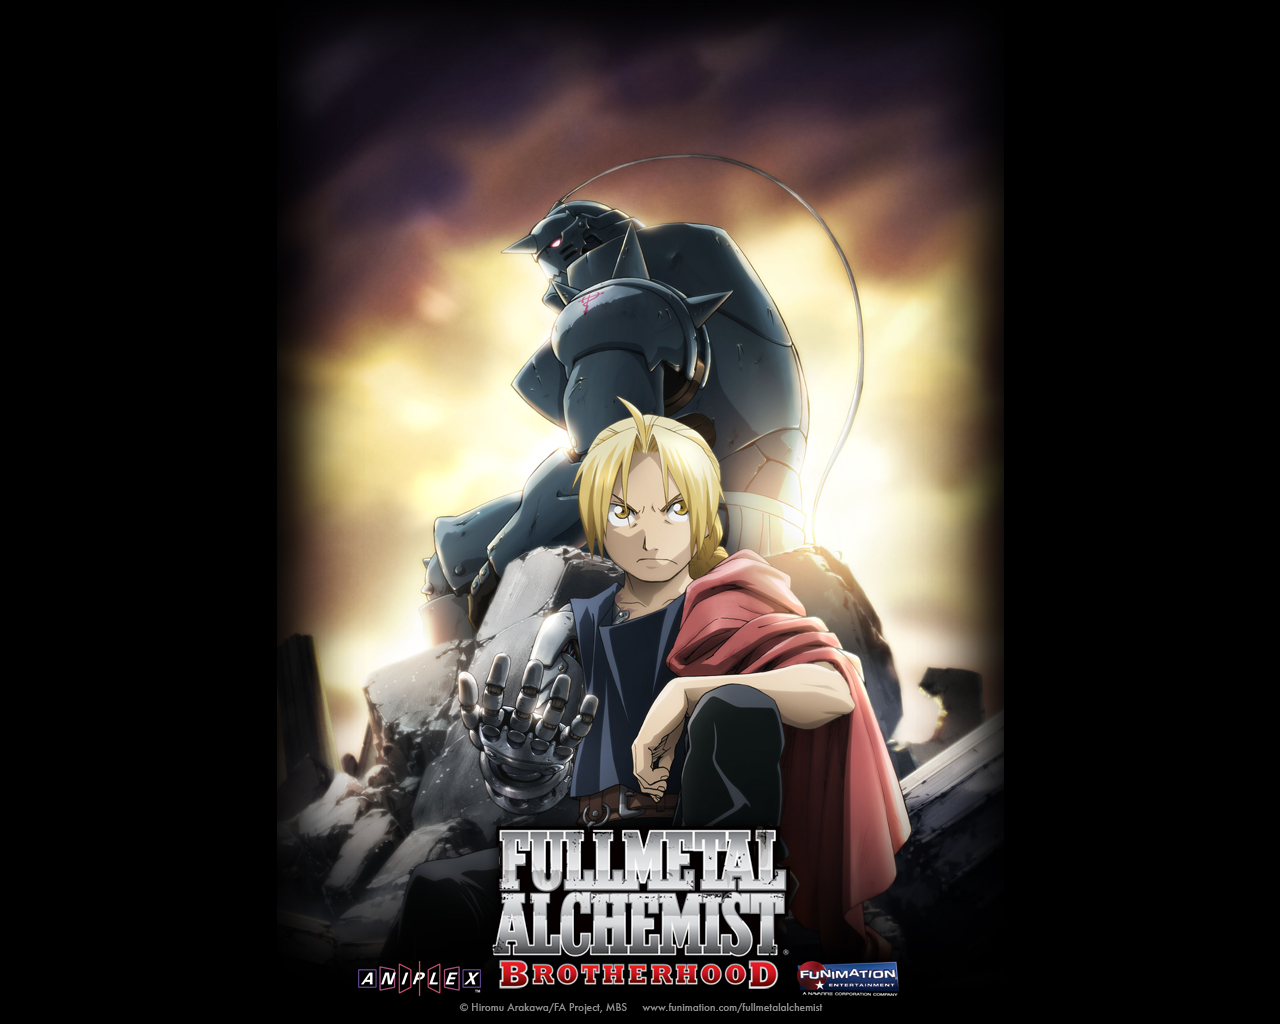 Full Metal Alchemist wallpapers Full Metal Alchemist background 1280x1024